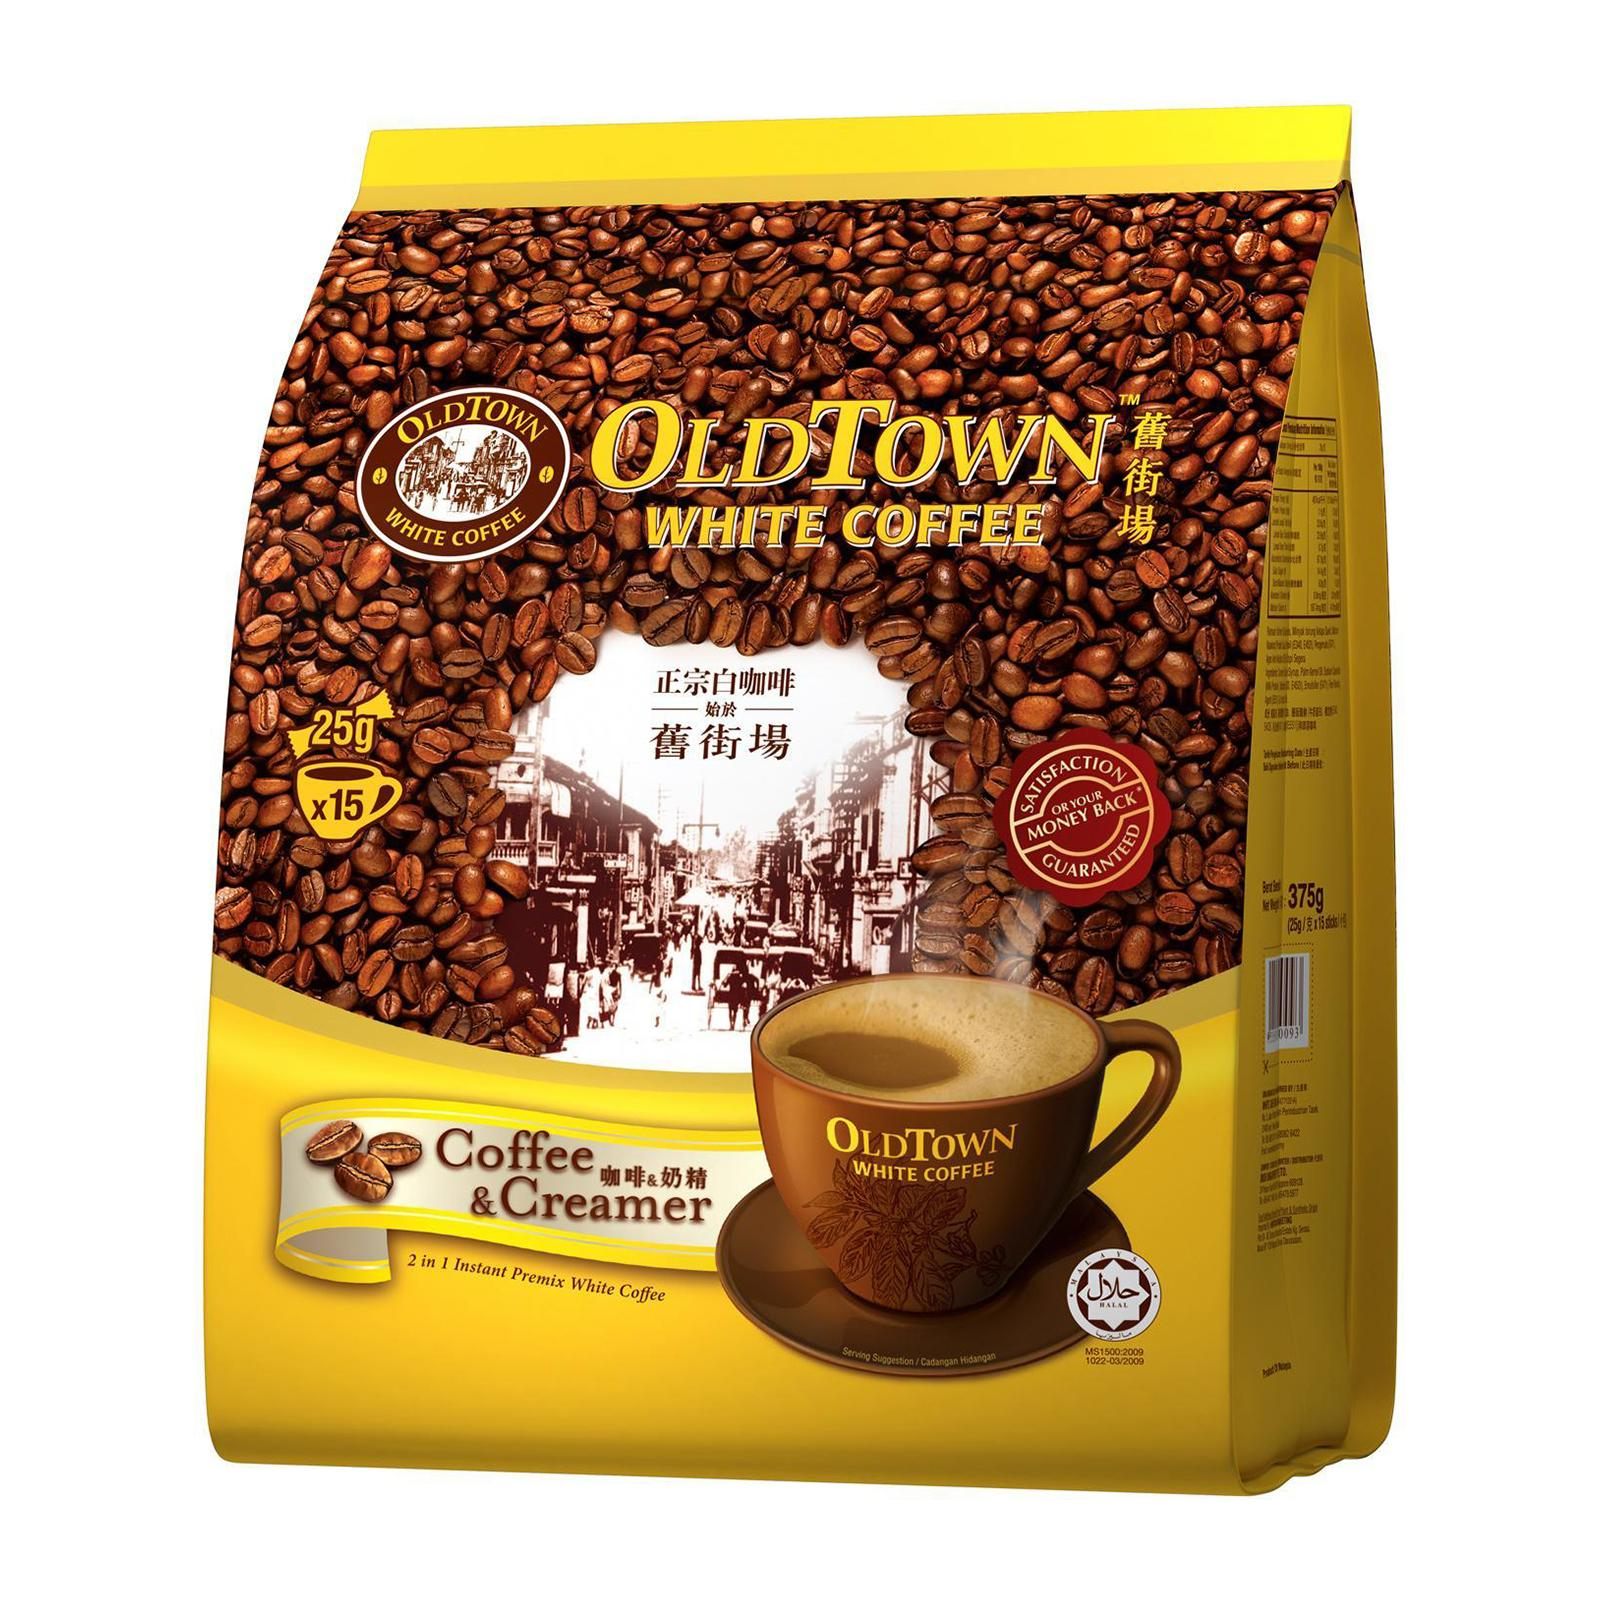 Old Town 2 in 1 Instant White Coffee - Coffee & Creamer